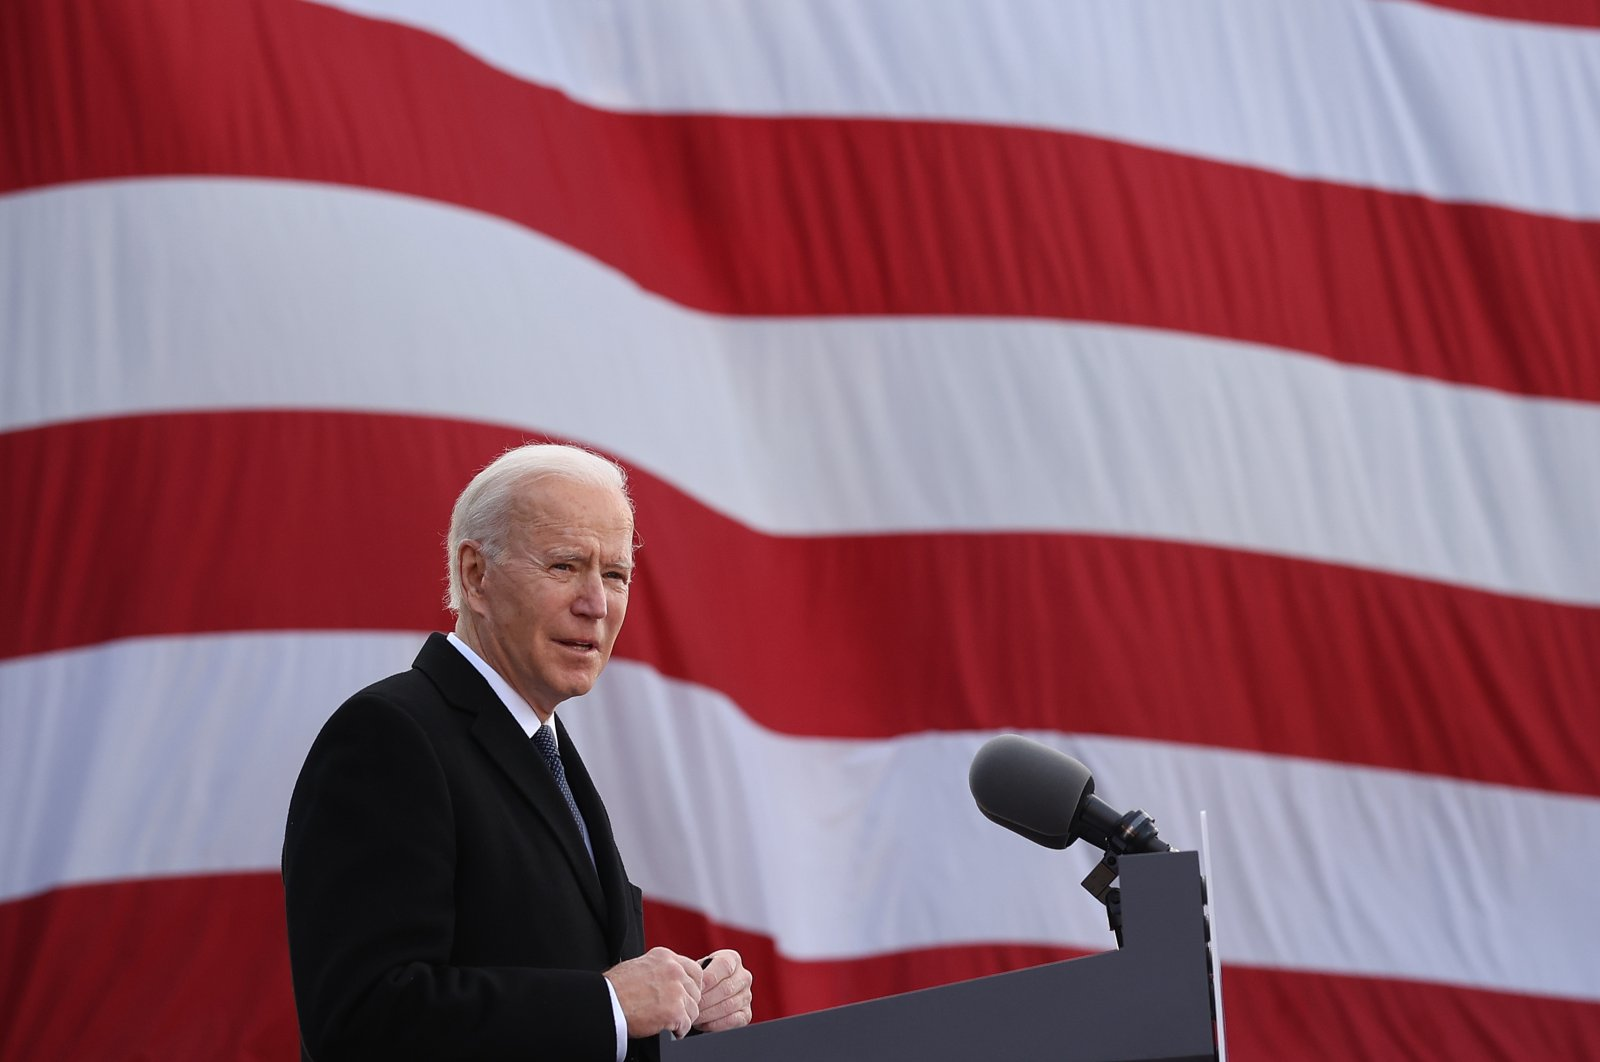 One day before being inaugurated as the 46th president of the United States, President-elect Joe Biden delivers remarks in New Castle, Delaware, U.S., Jan. 19, 2021. (Photo by Getty Images)